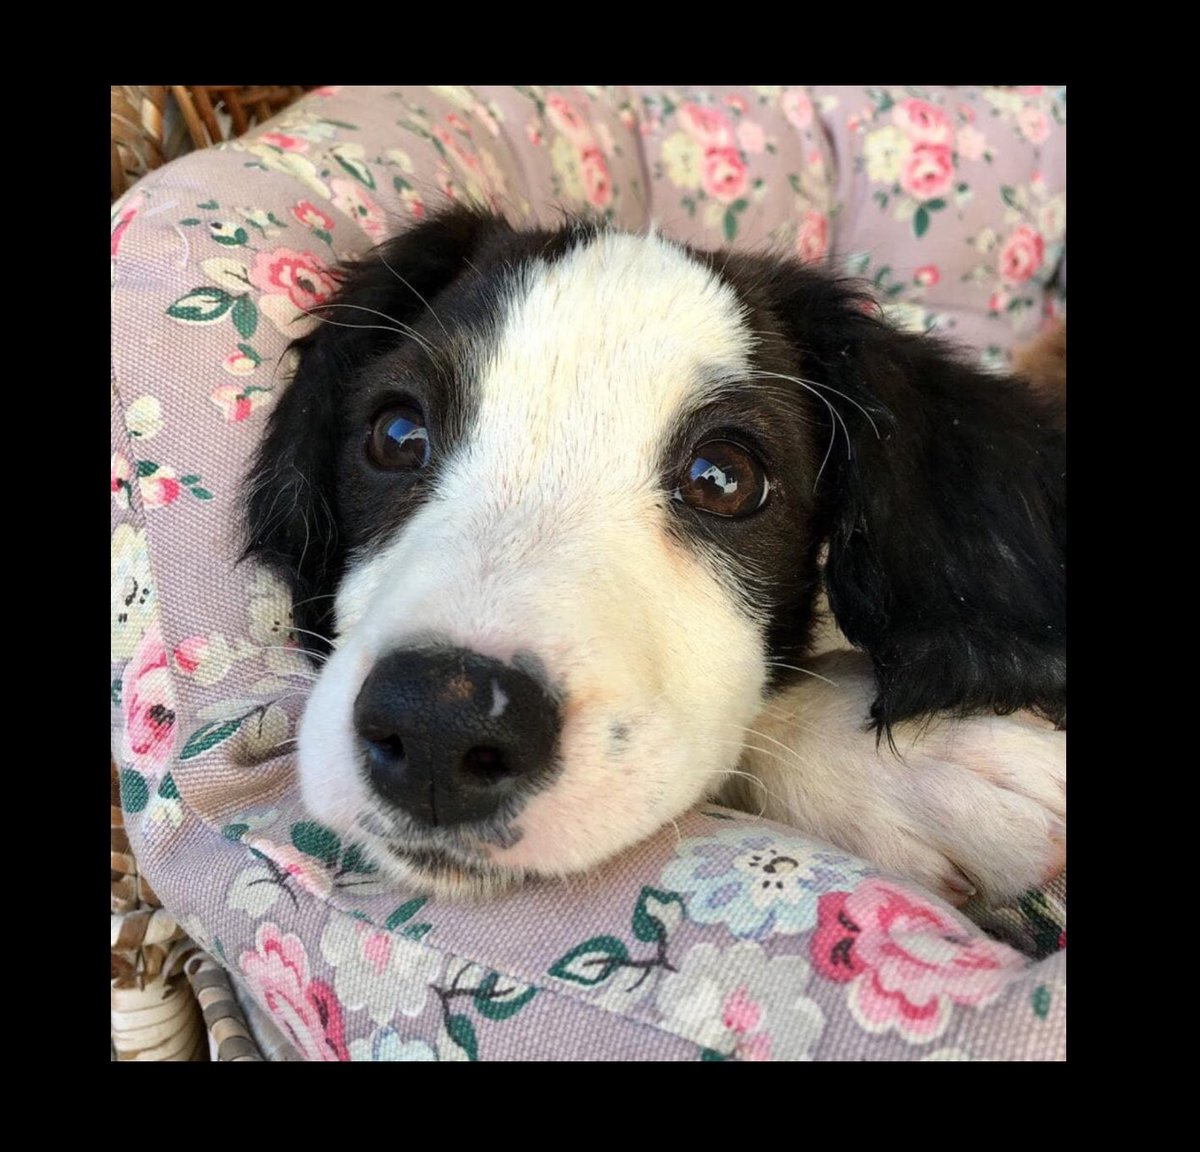 Stray pup Domino is waiting patiently for a special human &amp; love in a forever home. Could you love this little sweetheart?  #ADOPT in #UK #Germany #Holland #Zante #puppylove #cutedogs #AdoptDontShop<br>http://pic.twitter.com/HA1eaodhI2